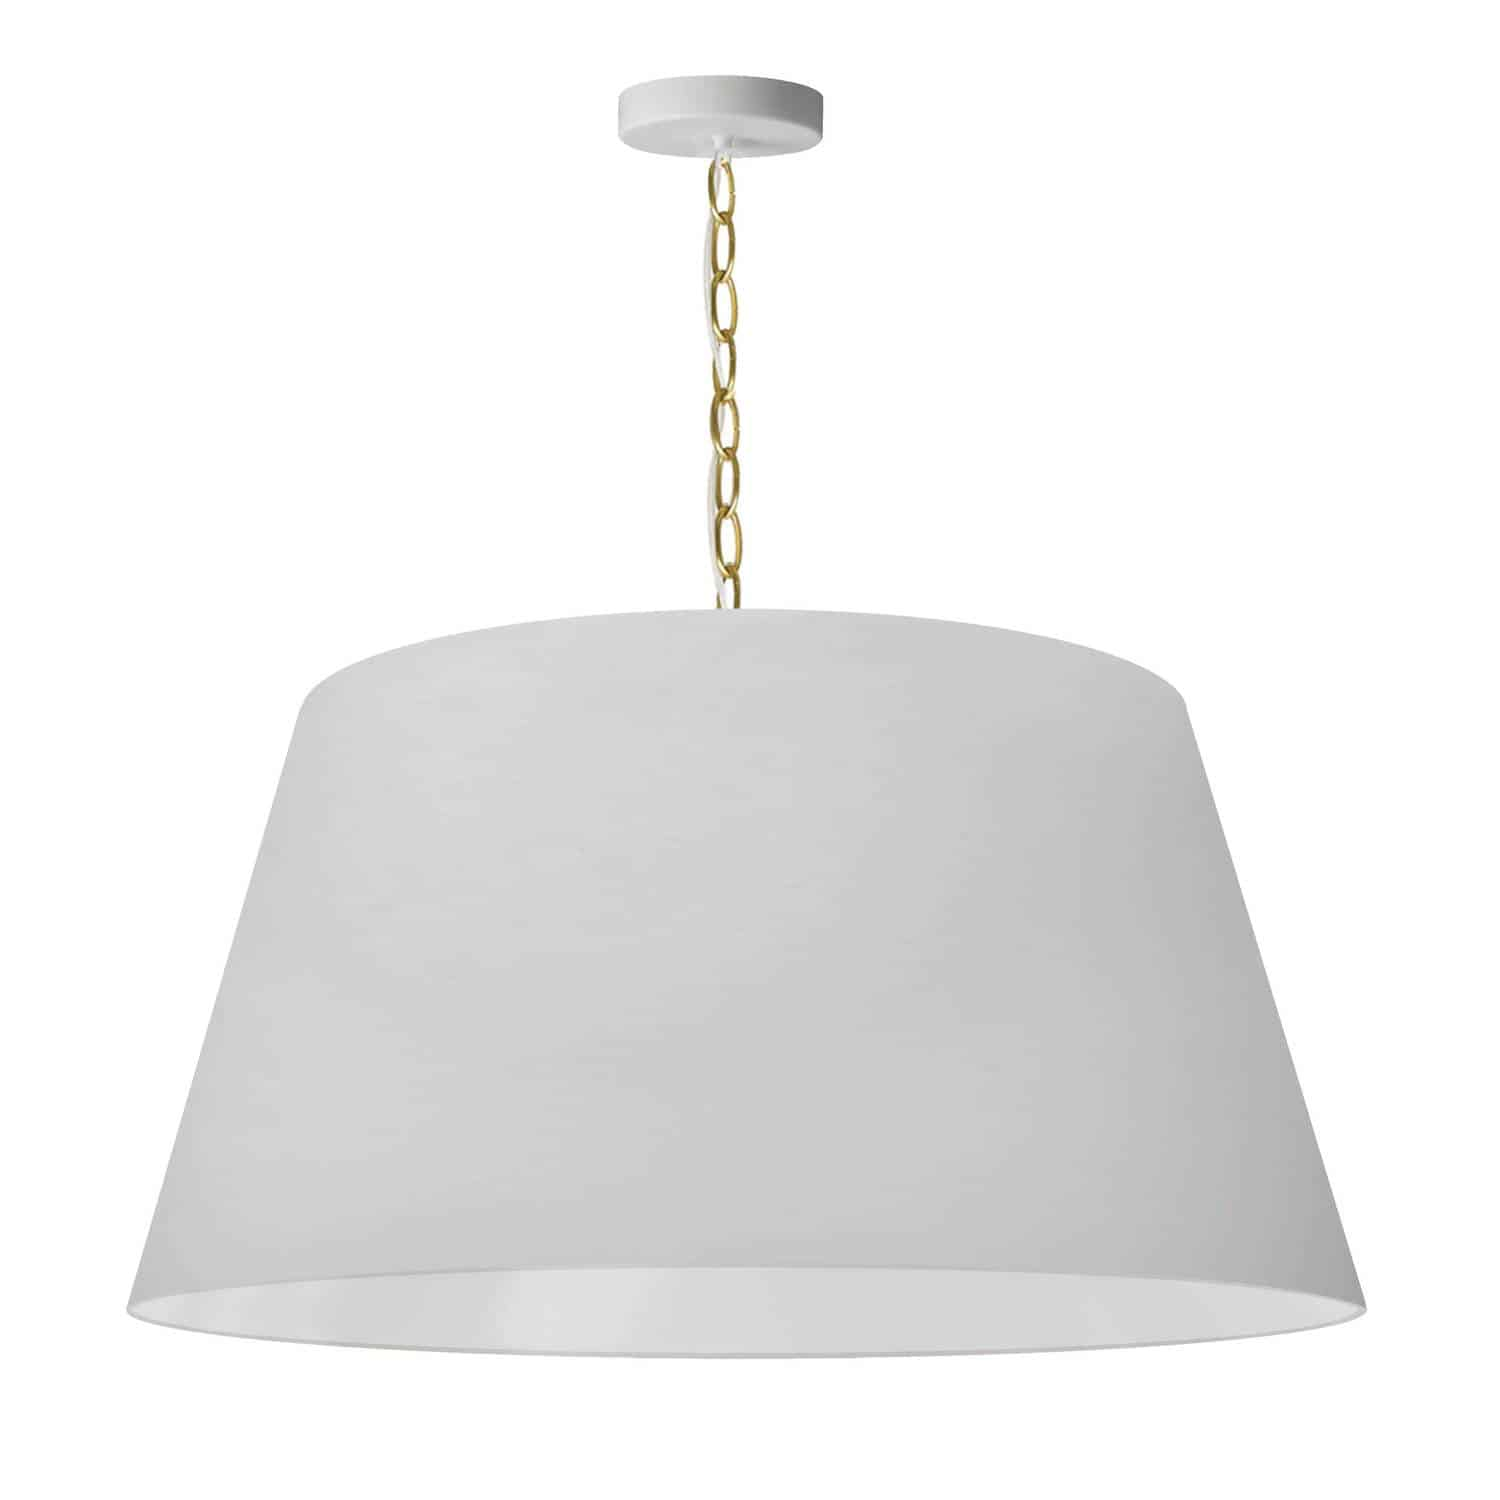 1 Light Brynn Large Pendant, White Shade, Aged Brass